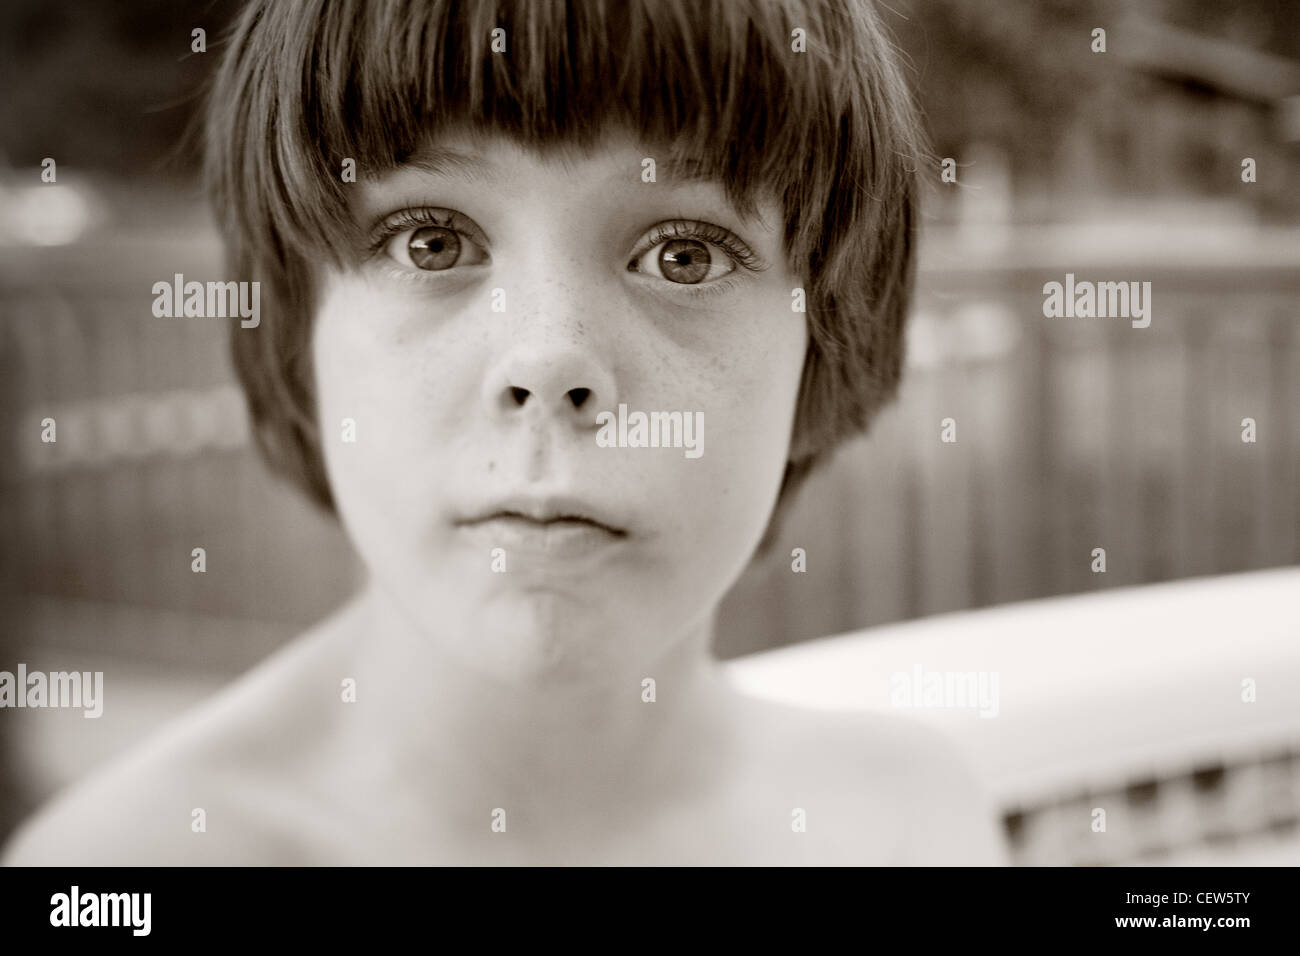 Eight year old boy looking serious, eye contact with camera, outdoors near swimming pool. Stock Photo